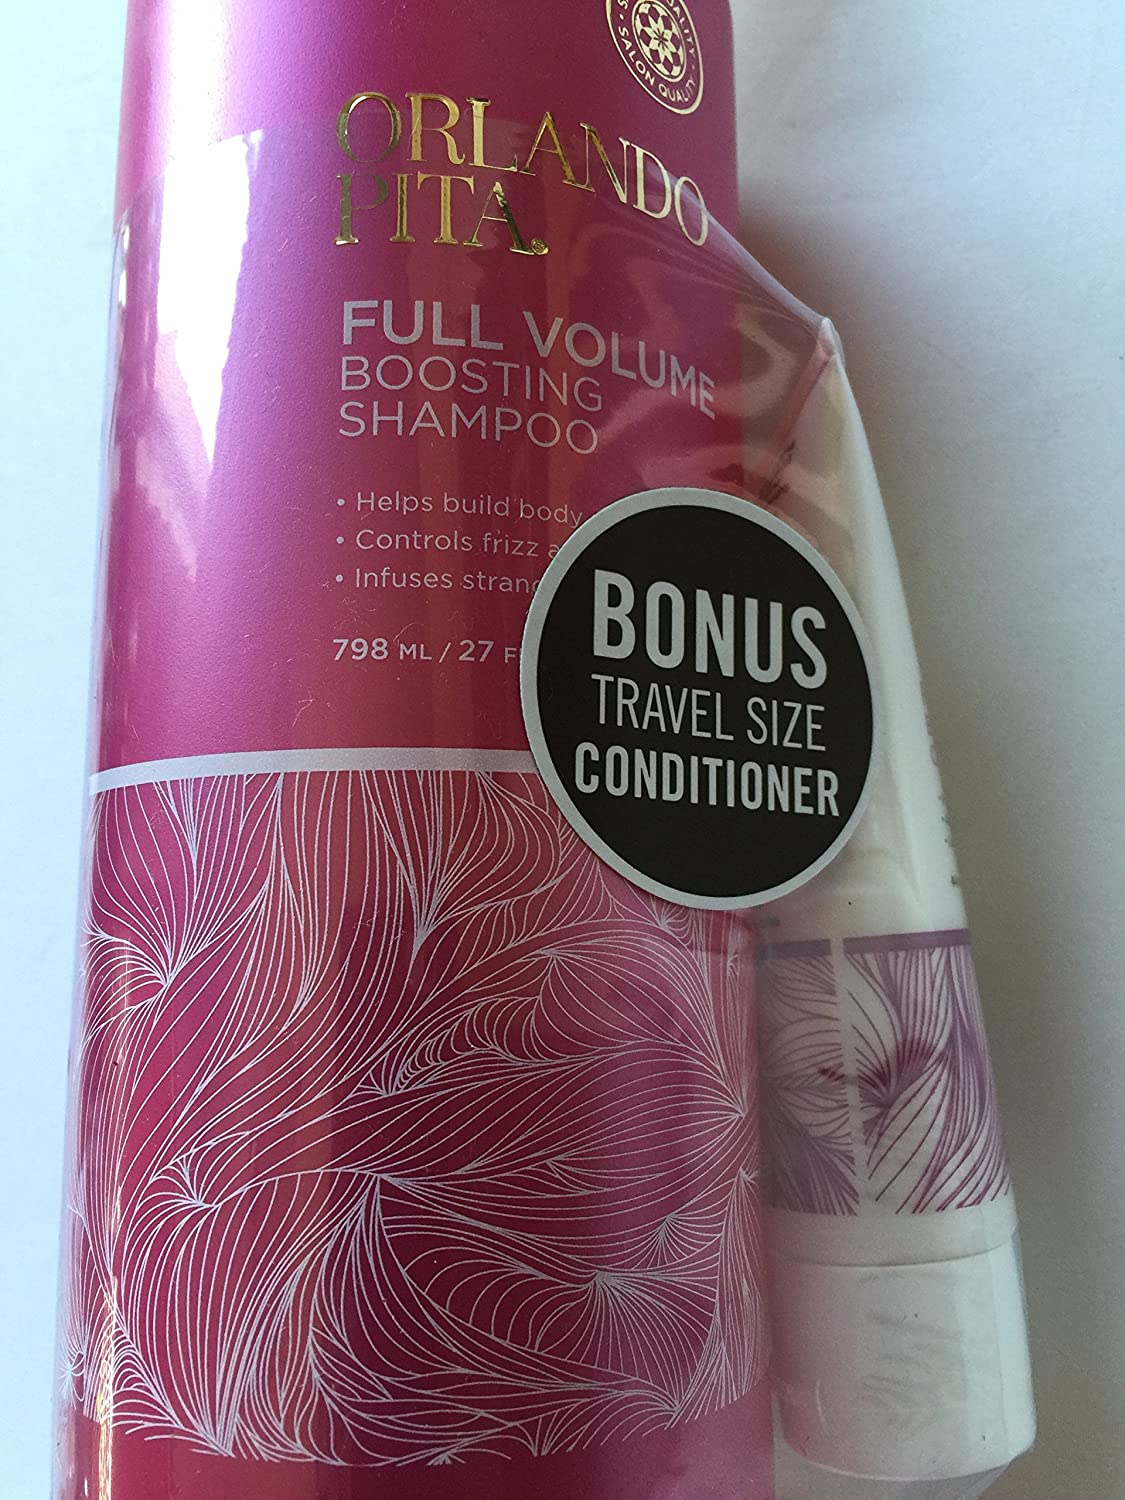 Amazon.com : Orlando Pita Full Volume Boosting Sampoo & Conditioner Set (Each 27 Floz) : Beauty